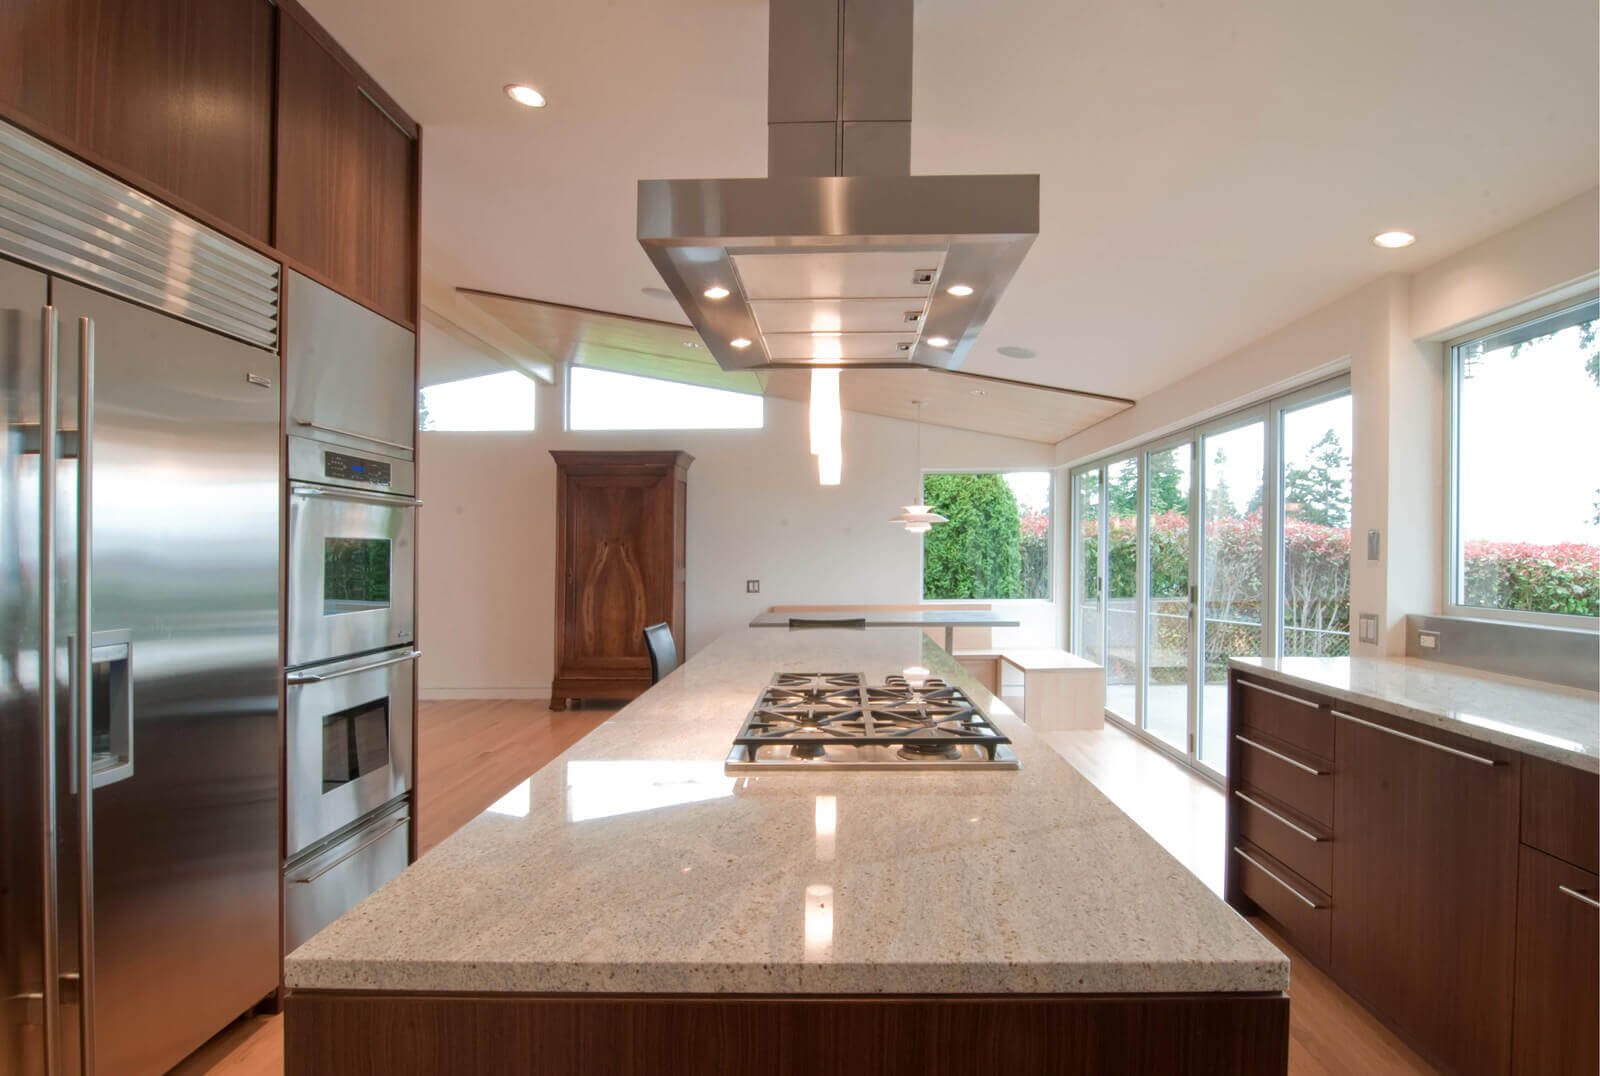 Like most contemporary kitchen designs, this room makes the modern kitchen island with cooktop the focus of the space. The marble countertops add softness to the warm tone of the space